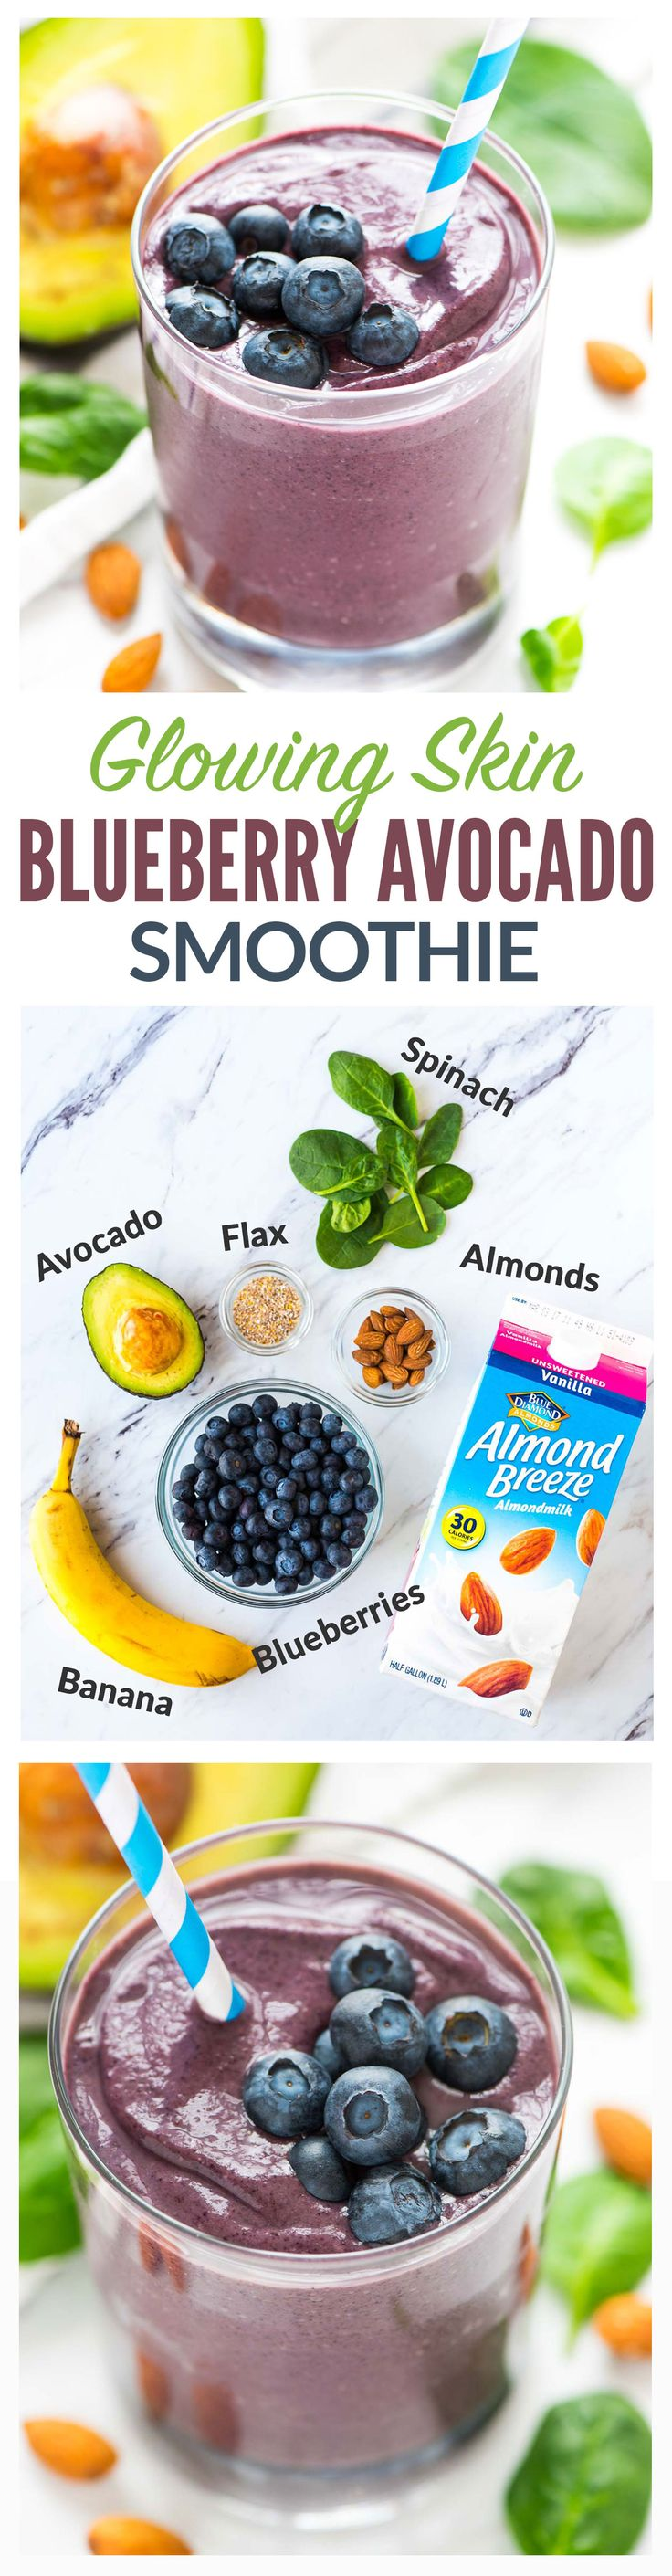 Hydrating Blueberry Avocado Banana Smoothie for glowing skin! With antioxidants and healthy fats from ingredients like spinach, blueberries, almond milk, avocados, and flax, this green smoothie is DELICIOUS and a natural way to promote beauty and health. Recipe at wellplated.com | @wellplated